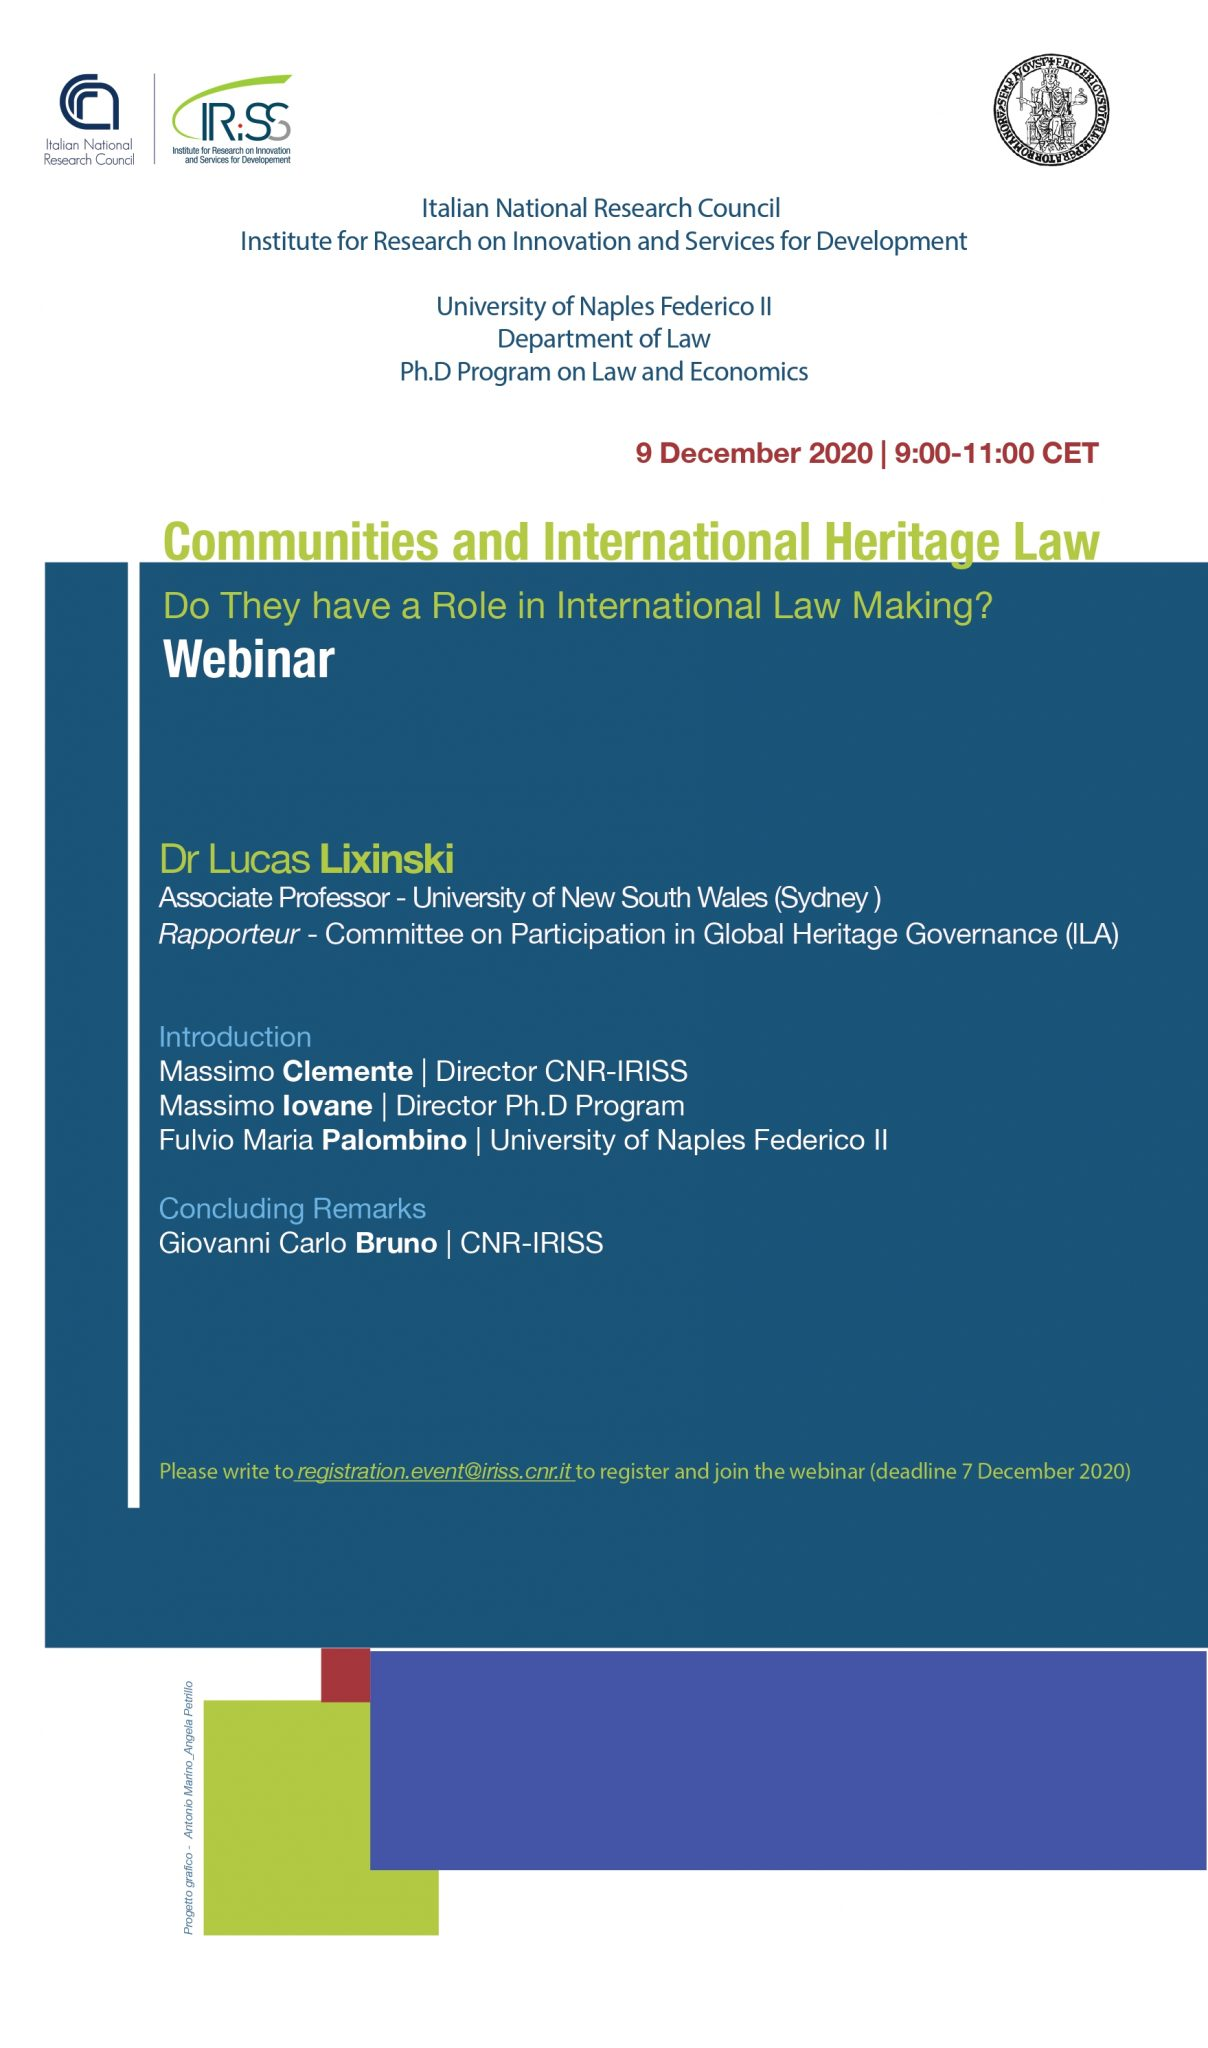 Communities and International Heritage Law. Do They have a Role in International Law-Making?